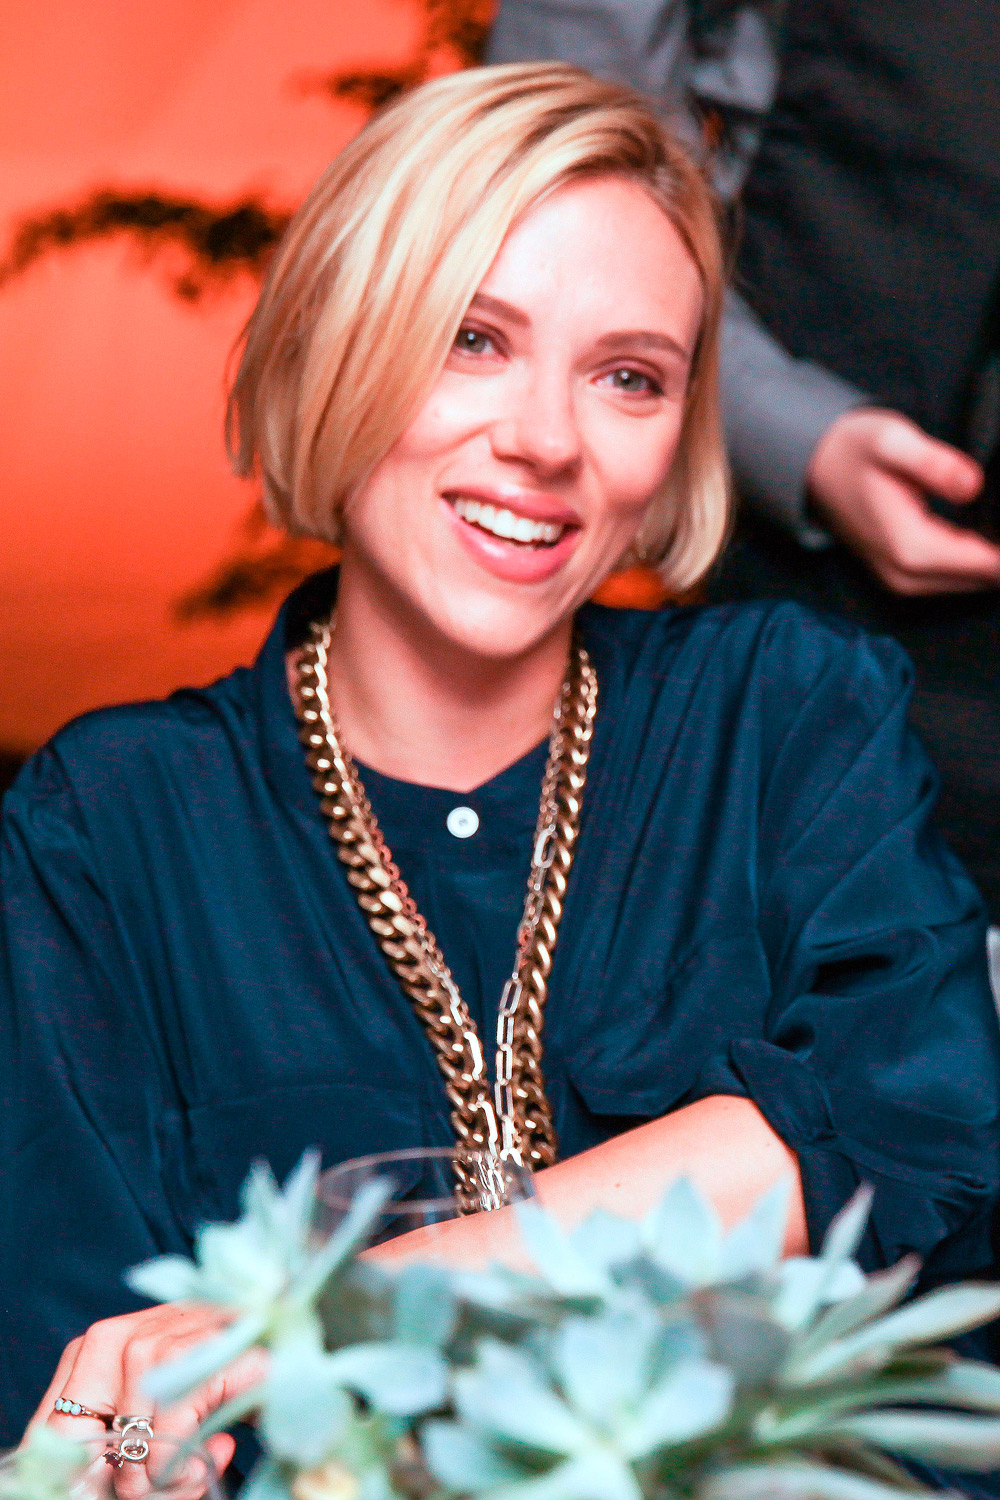 Scarlett Johansson Reveals Her Body Hang Ups, Makes Us All Feel A Little Bit Better